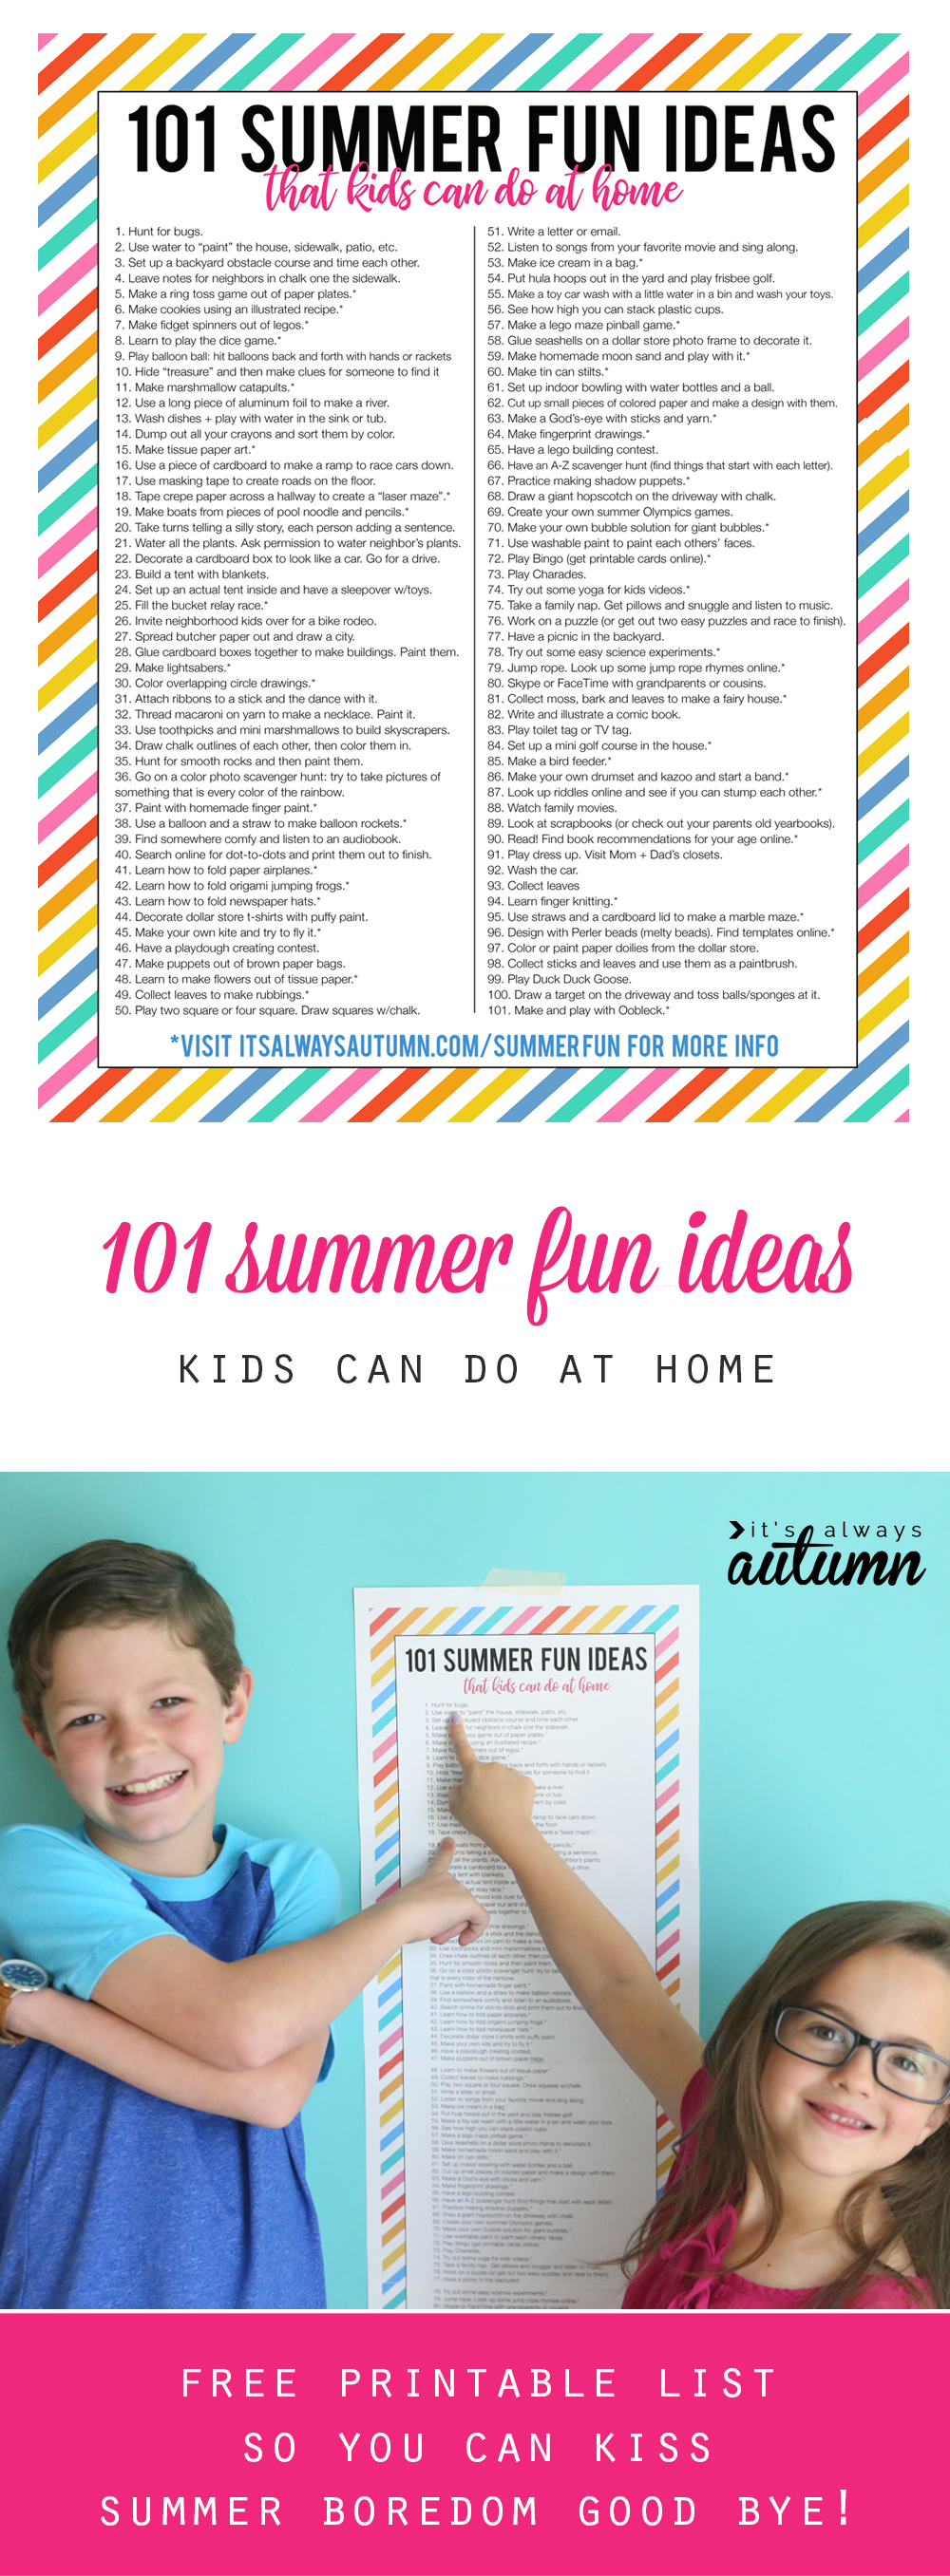 101 summer fun ideas for kids! These are easy, cheap, summer games, crafts and activities that kids can do at home. Good-bye summer boredom!